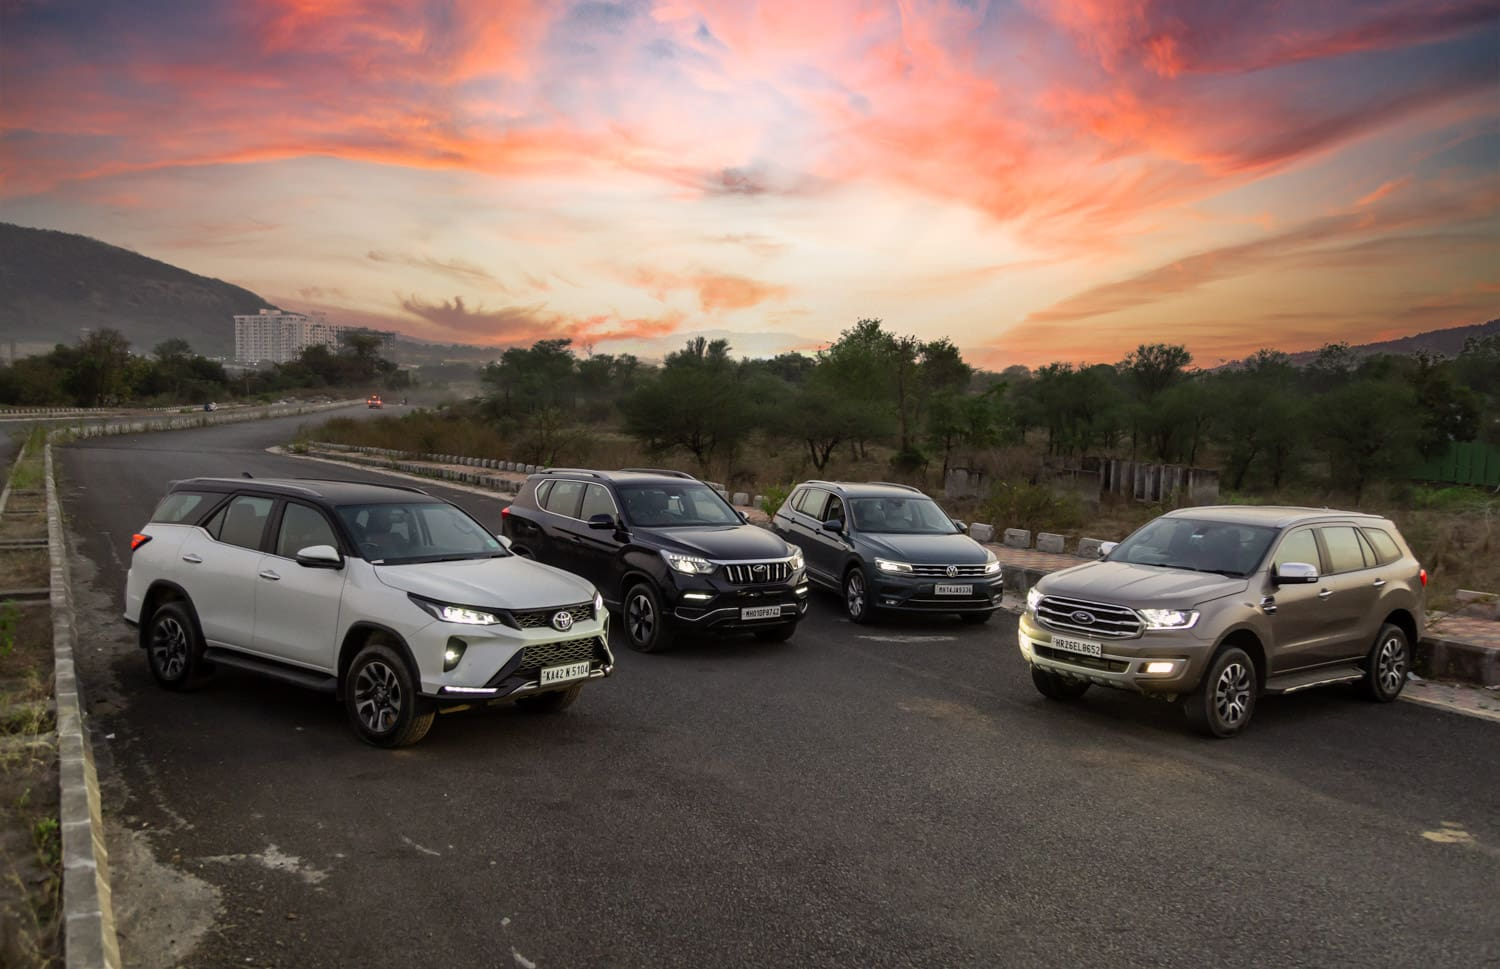 Beat The Heat: Toyota Fortuner vs Ford Endeavour vs Mahindra Alturas G4 vs VW Tiguan AllSpace : AC Performance Compared